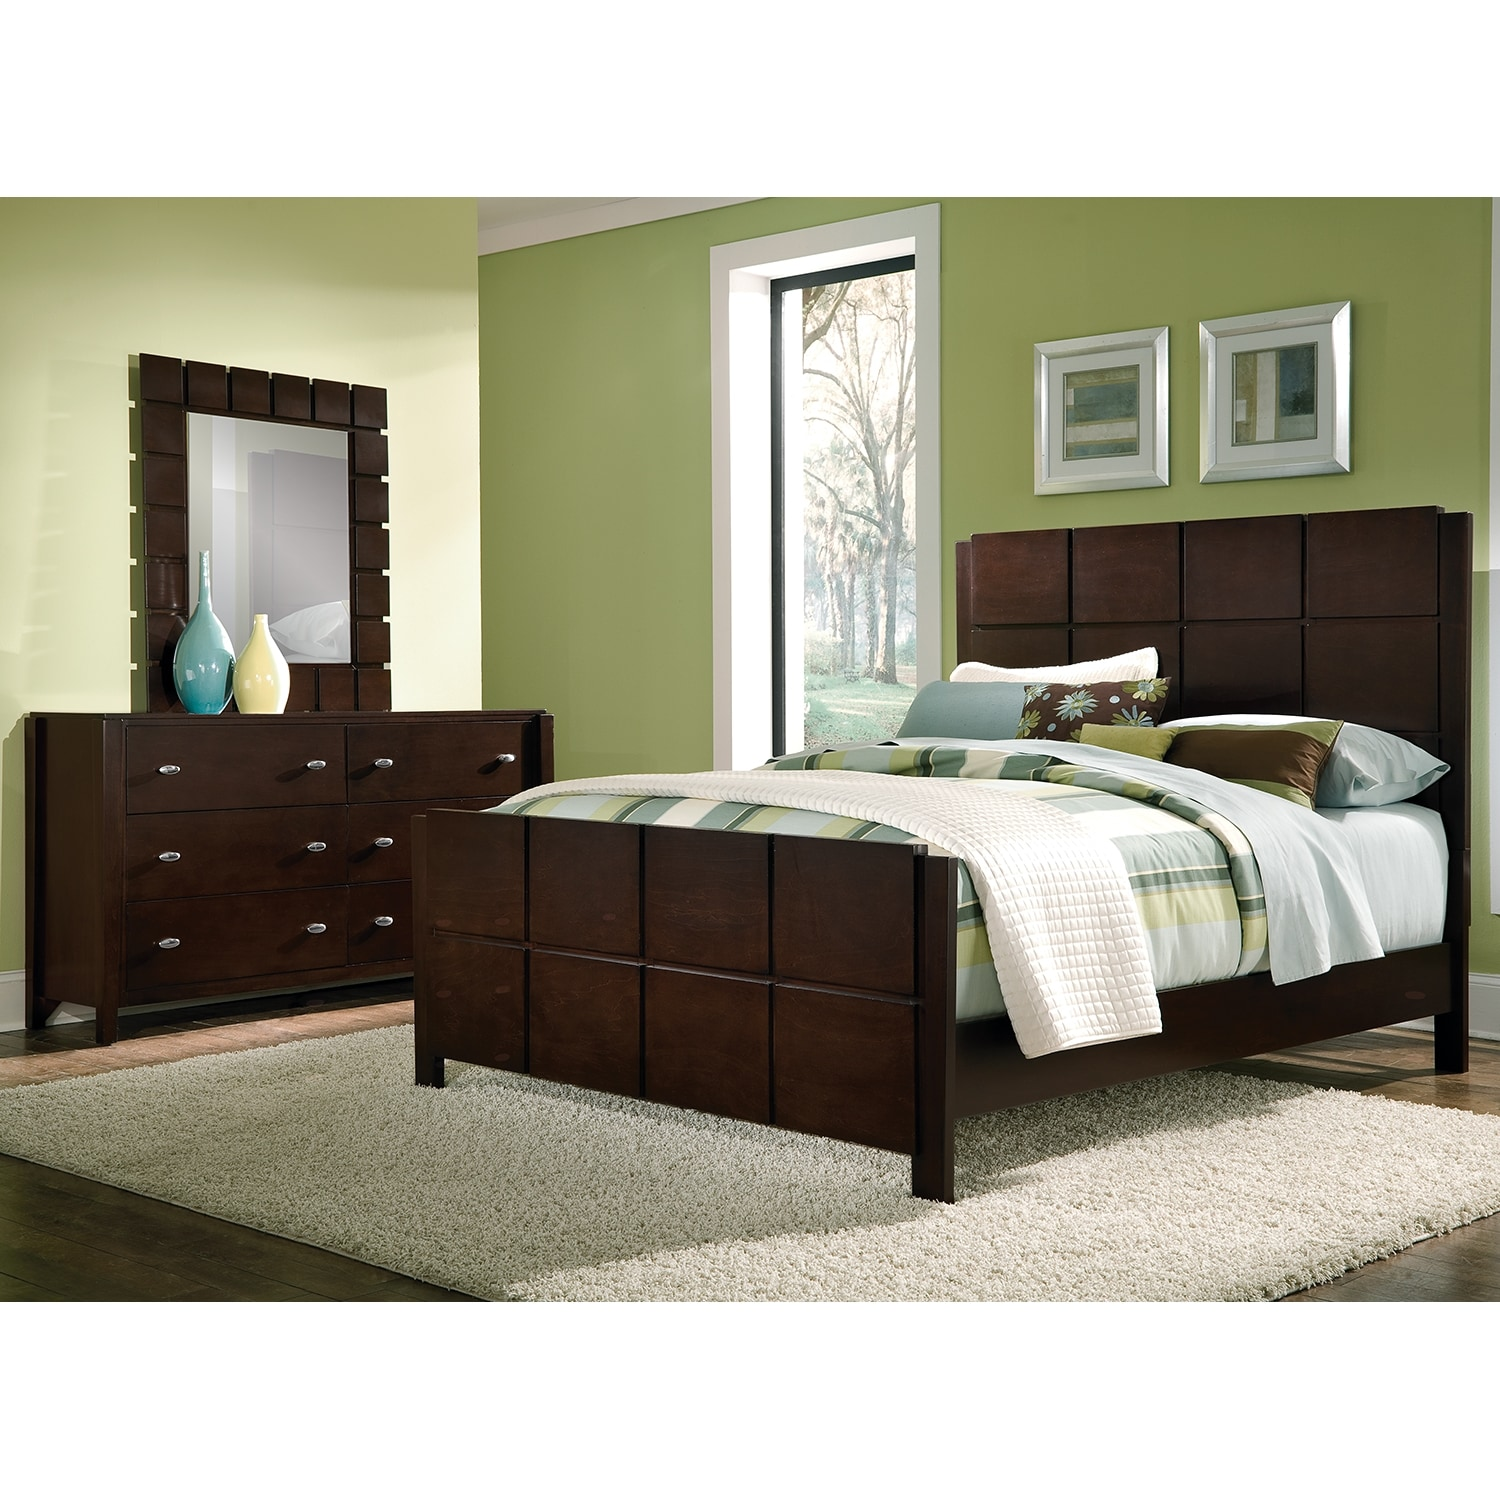 Mosaic 5-Piece Queen Bedroom Set - Dark Brown | Value City Furniture